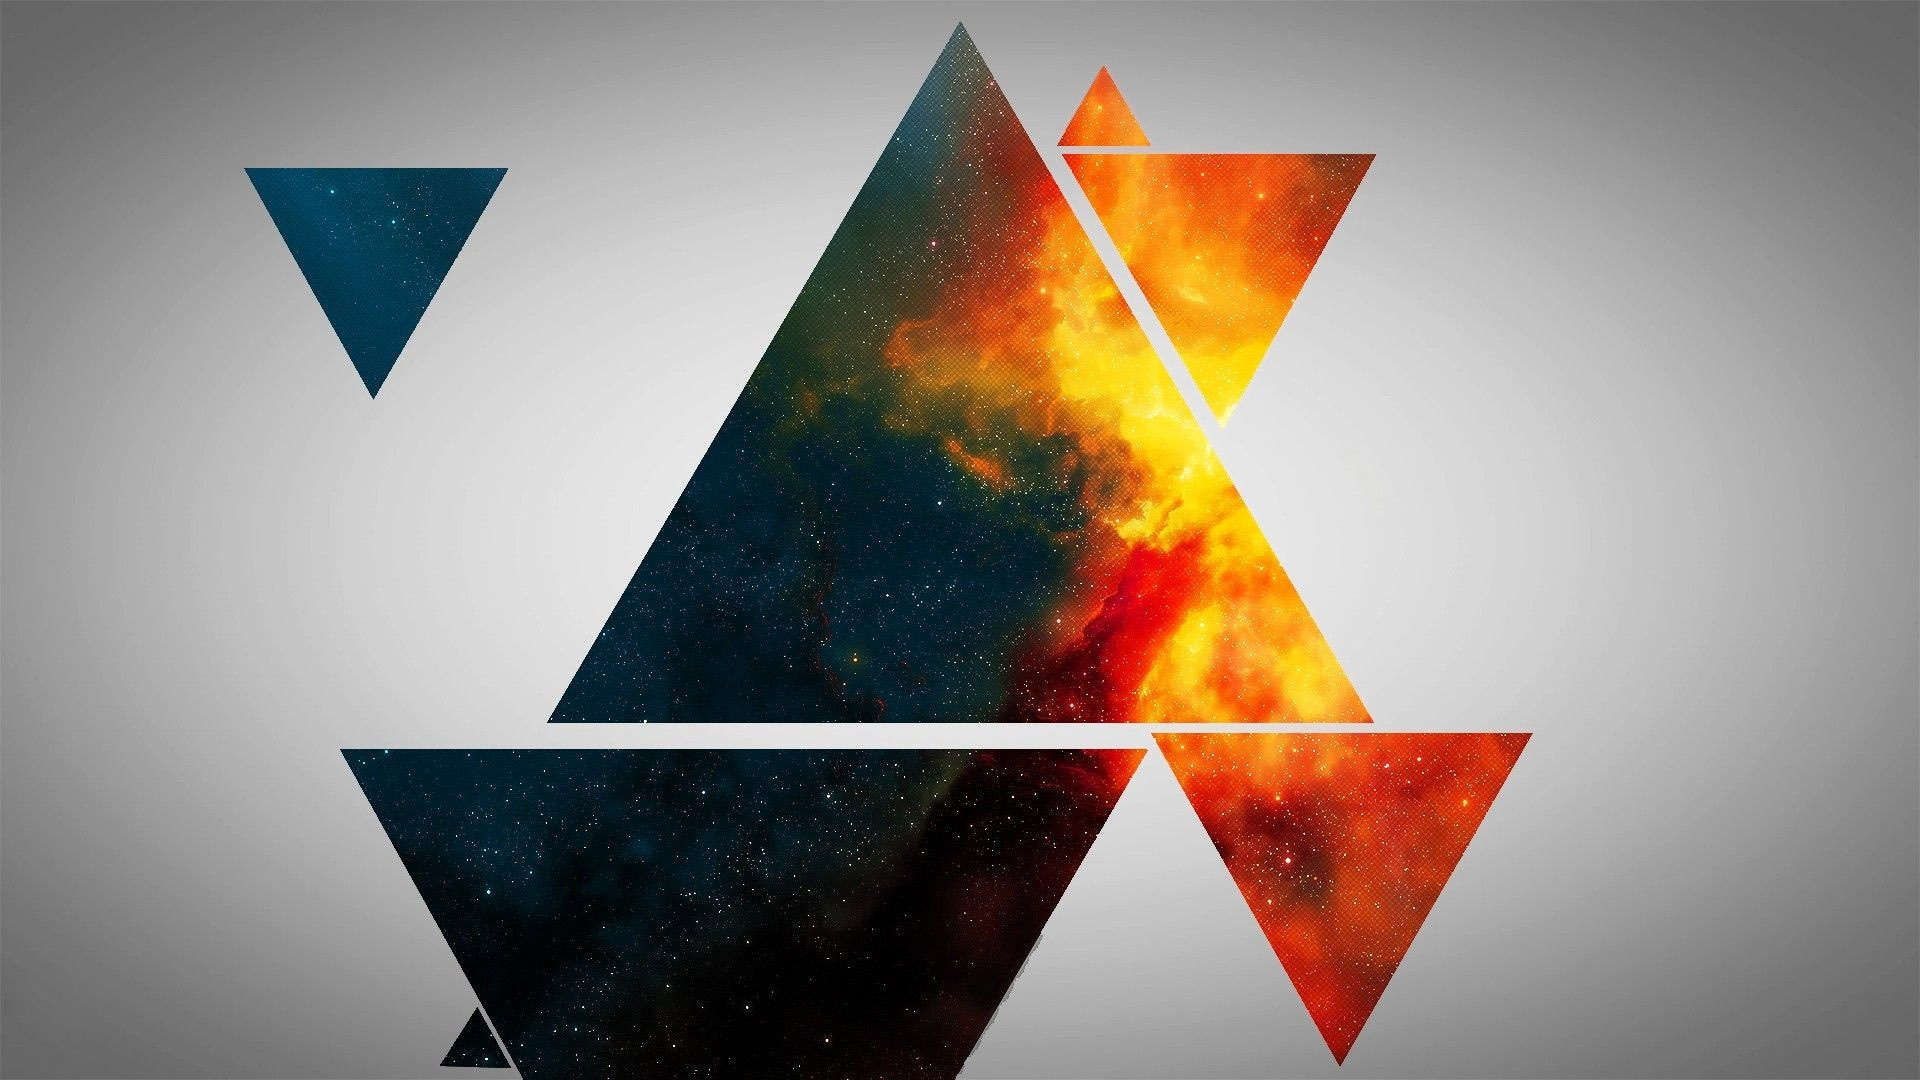 Shapes Triangle wallpaper photo hd